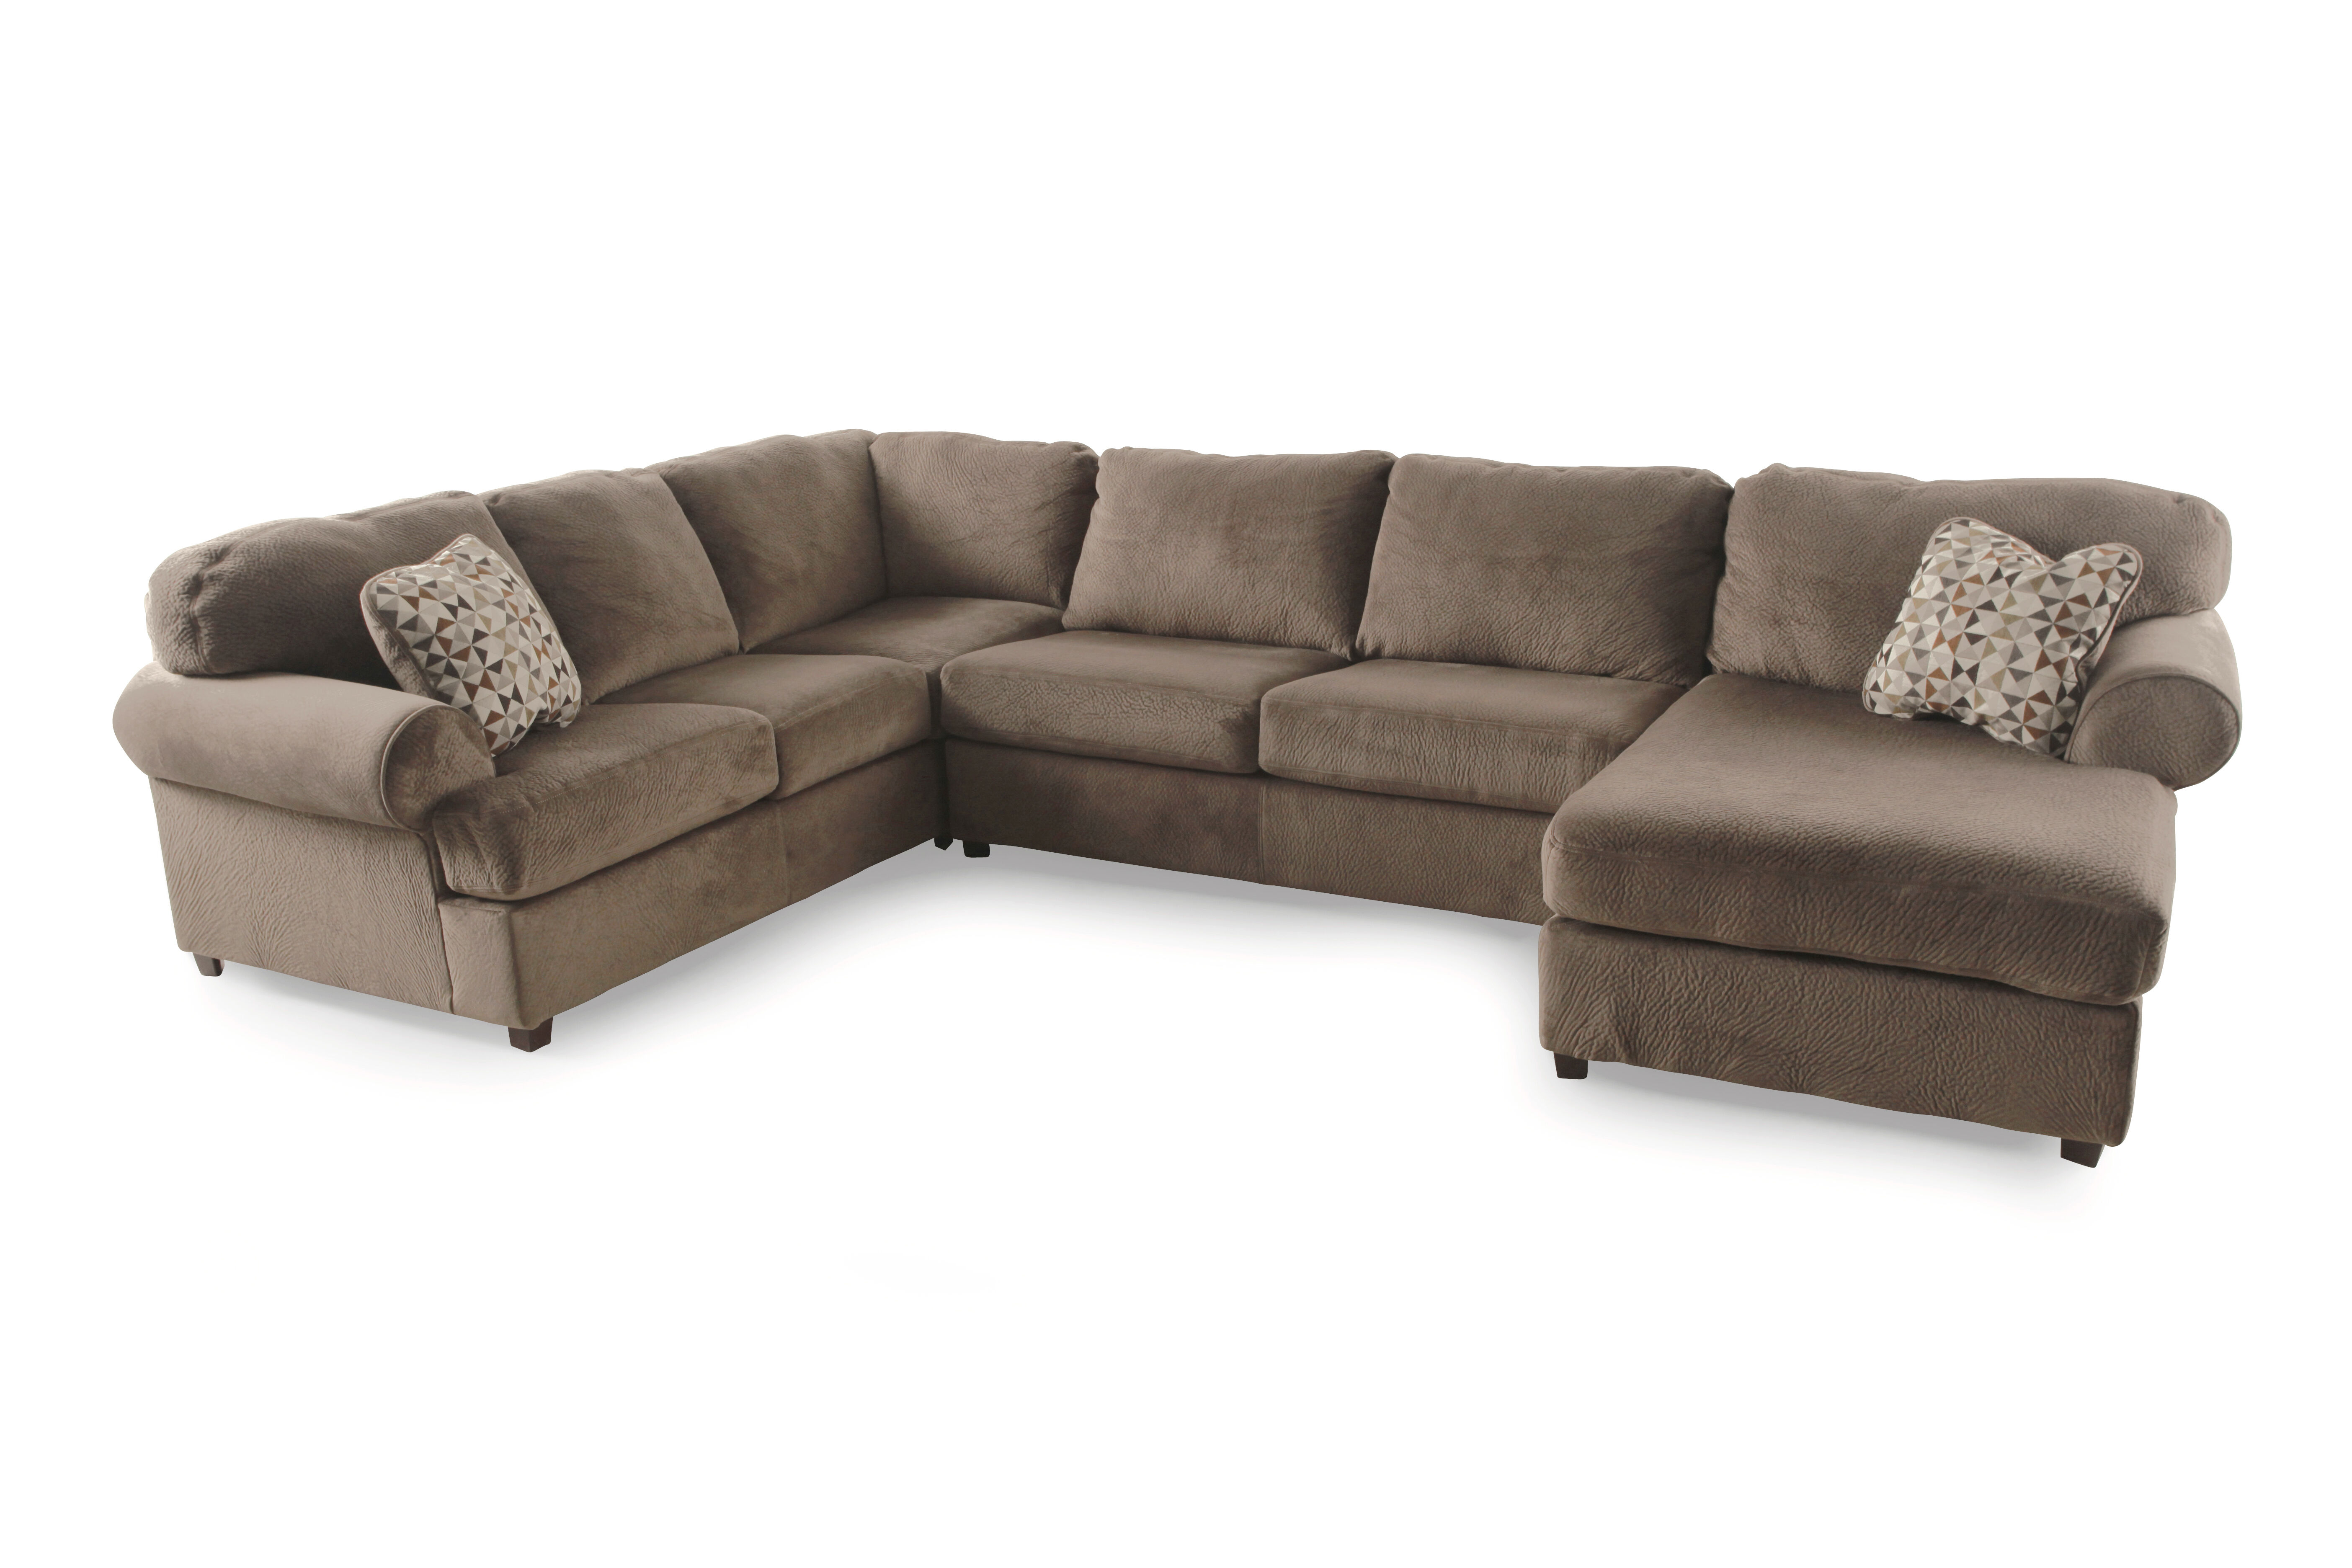 Microfiber 139 Sectional in Brown Dune Mathis Brothers Furniture